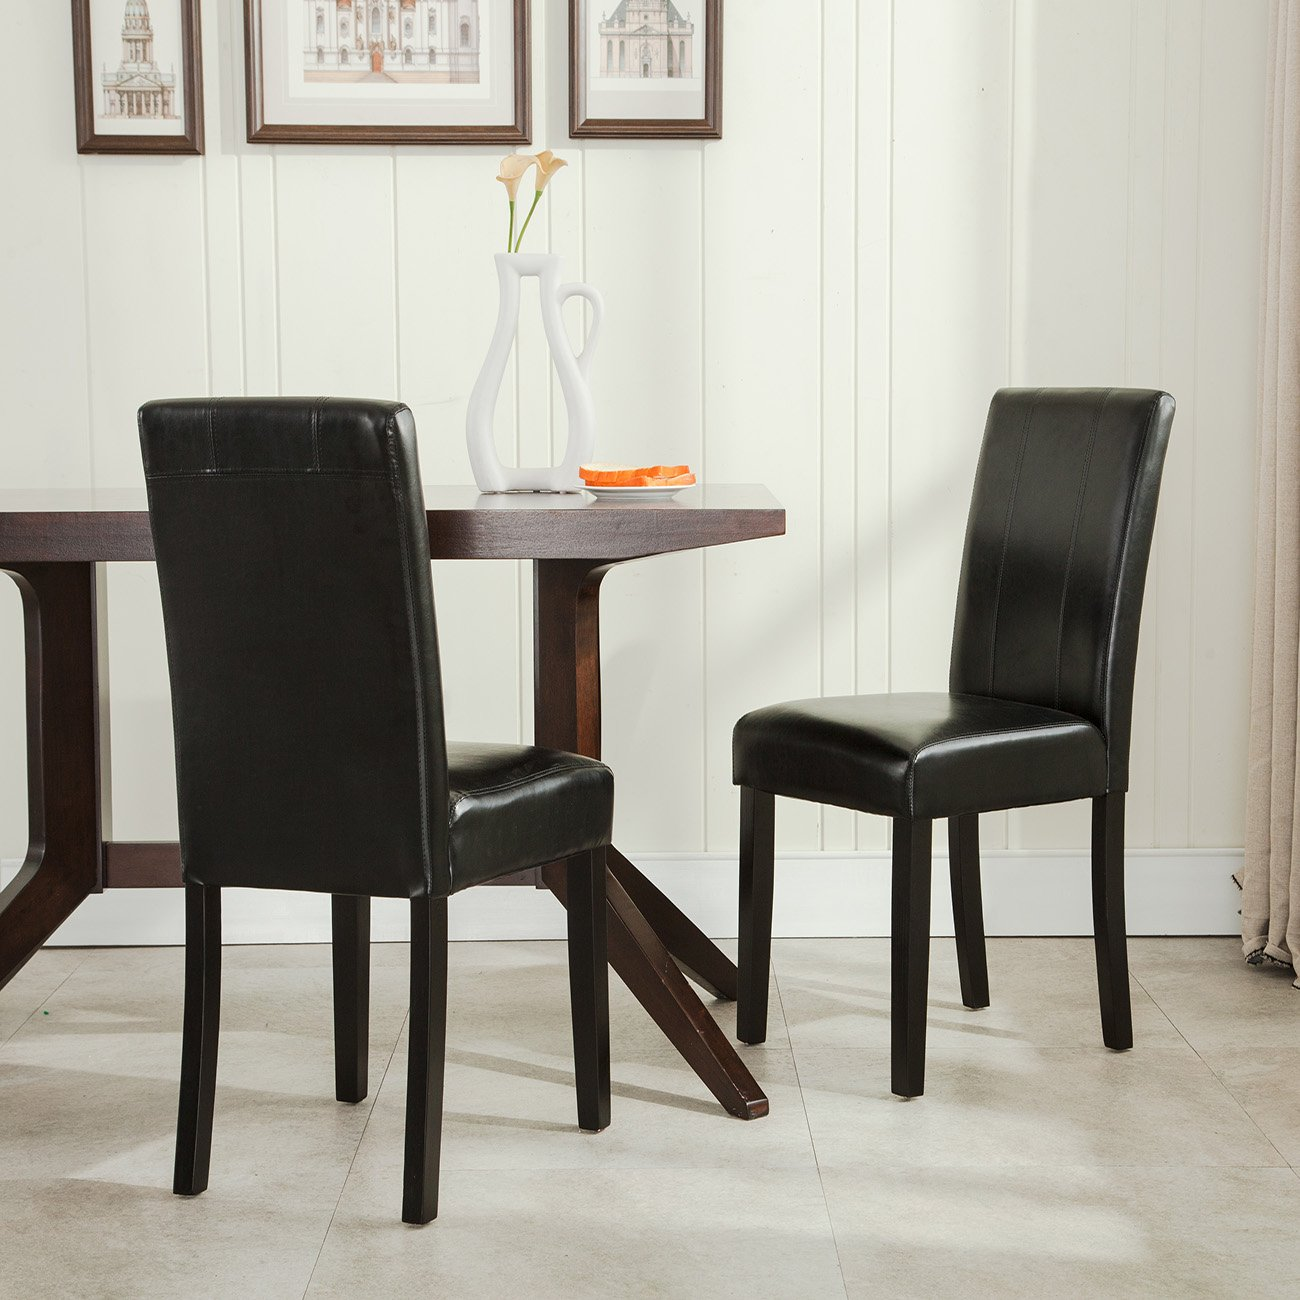 Belleze Leatherette Black Padded Parson Style Chair Dining Set Furniture (Set of 2) by Belleze (Image #1)